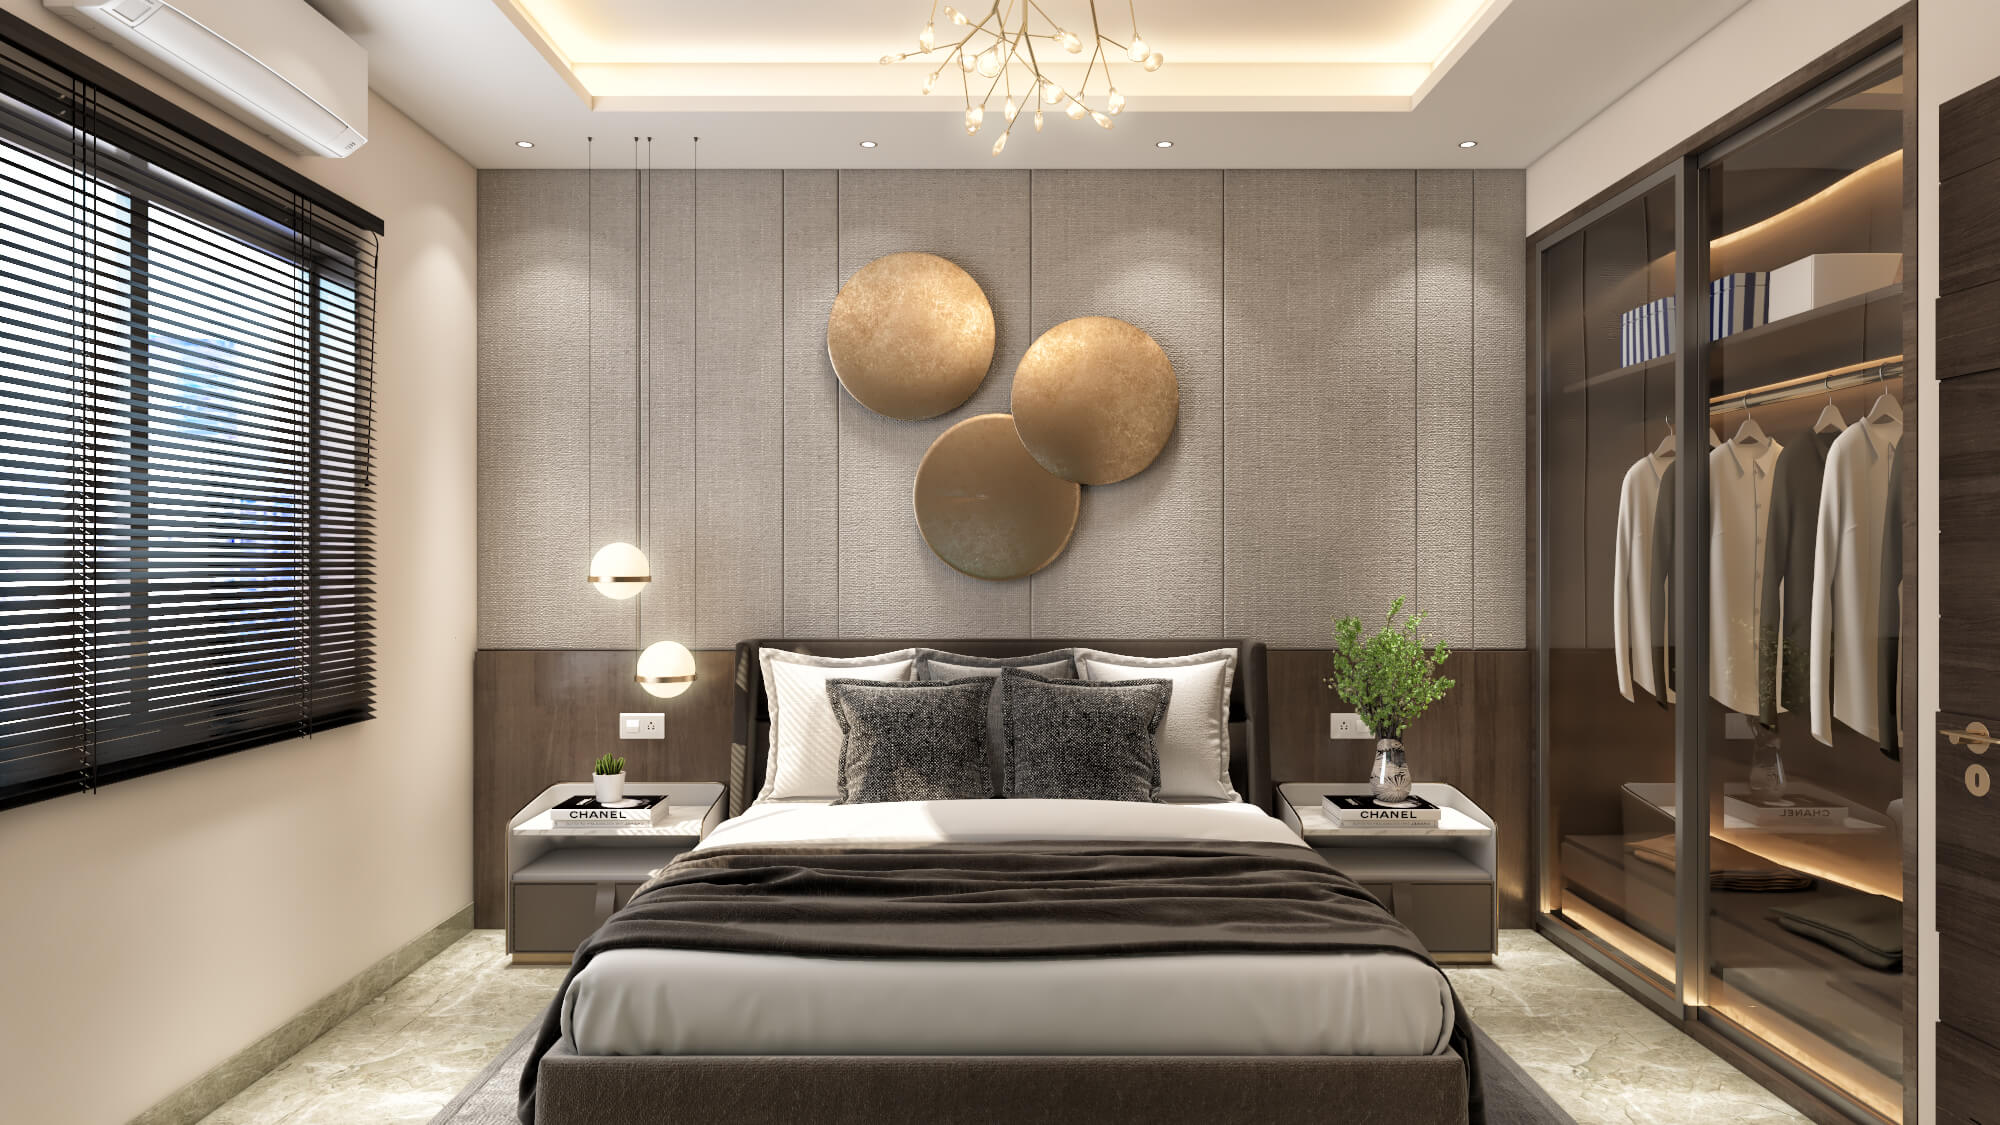 Cost of 3D Rendering: What Can Help to Get Top-Tier Interior CGI on a Budget